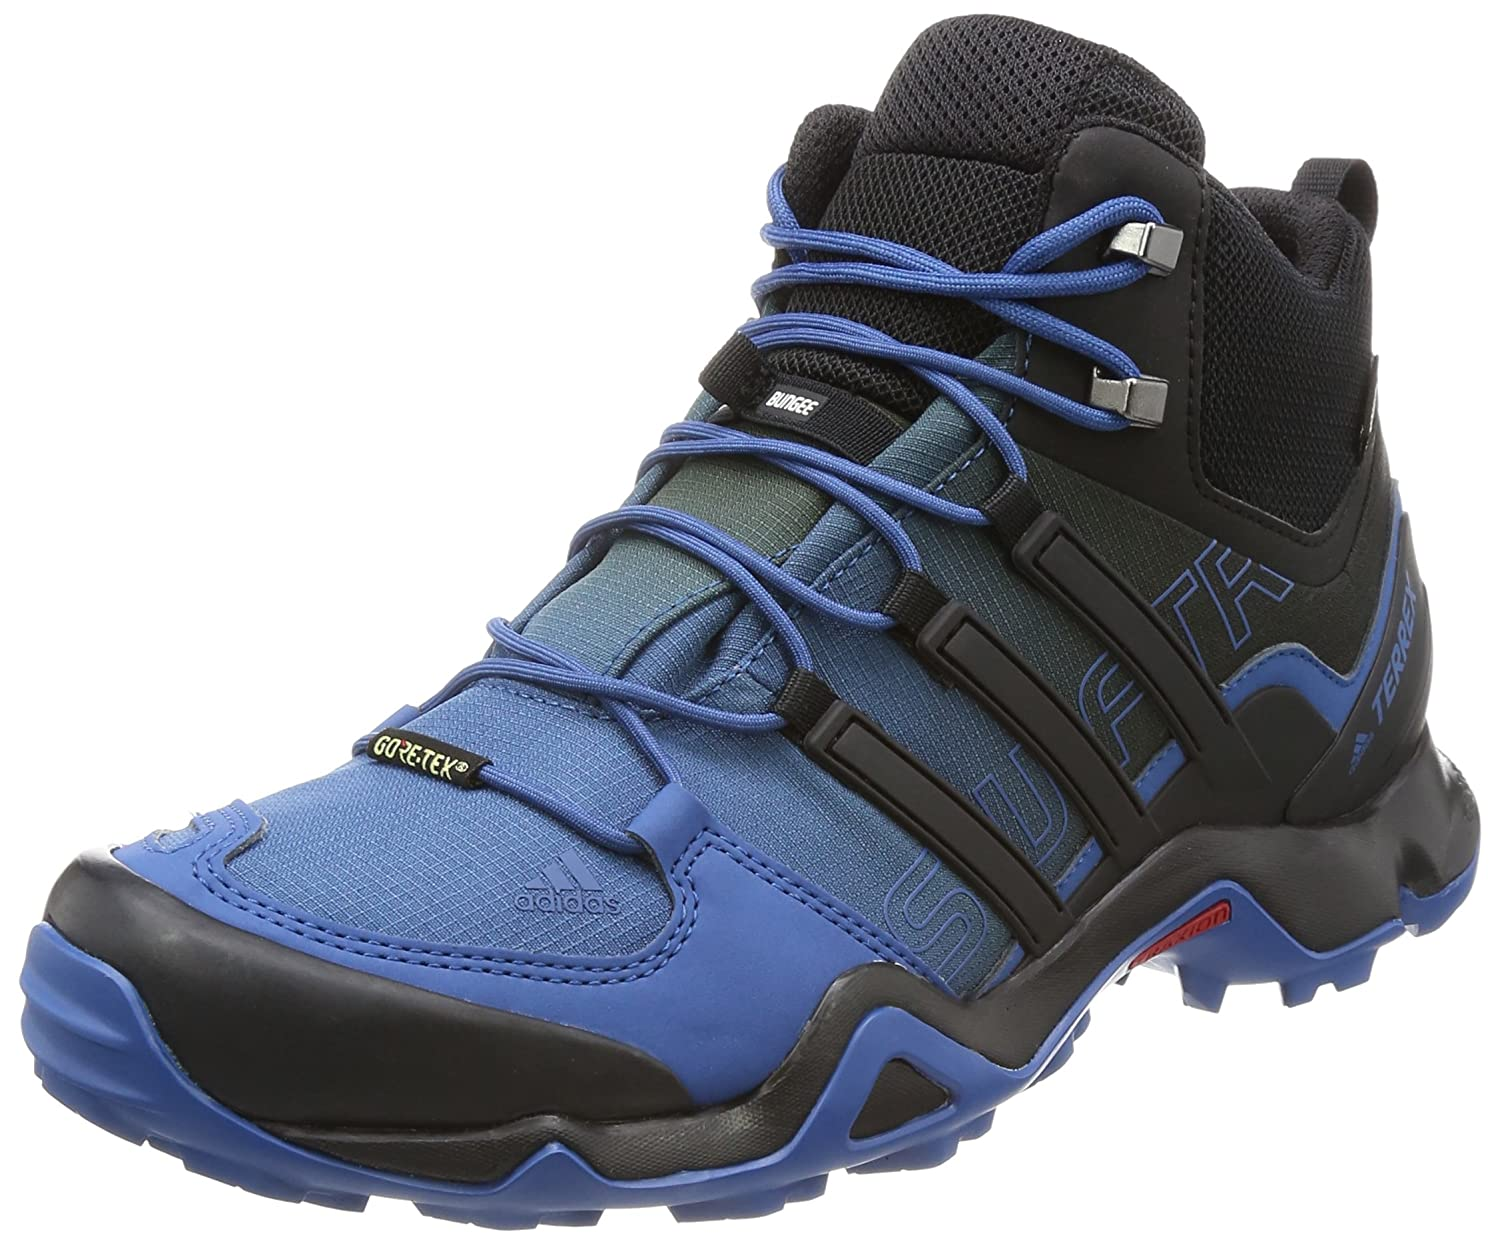 8efb5a5878042c adidas Men s Terrex Ax2r Mid GTX Hiking Boots  Amazon.co.uk  Shoes   Bags